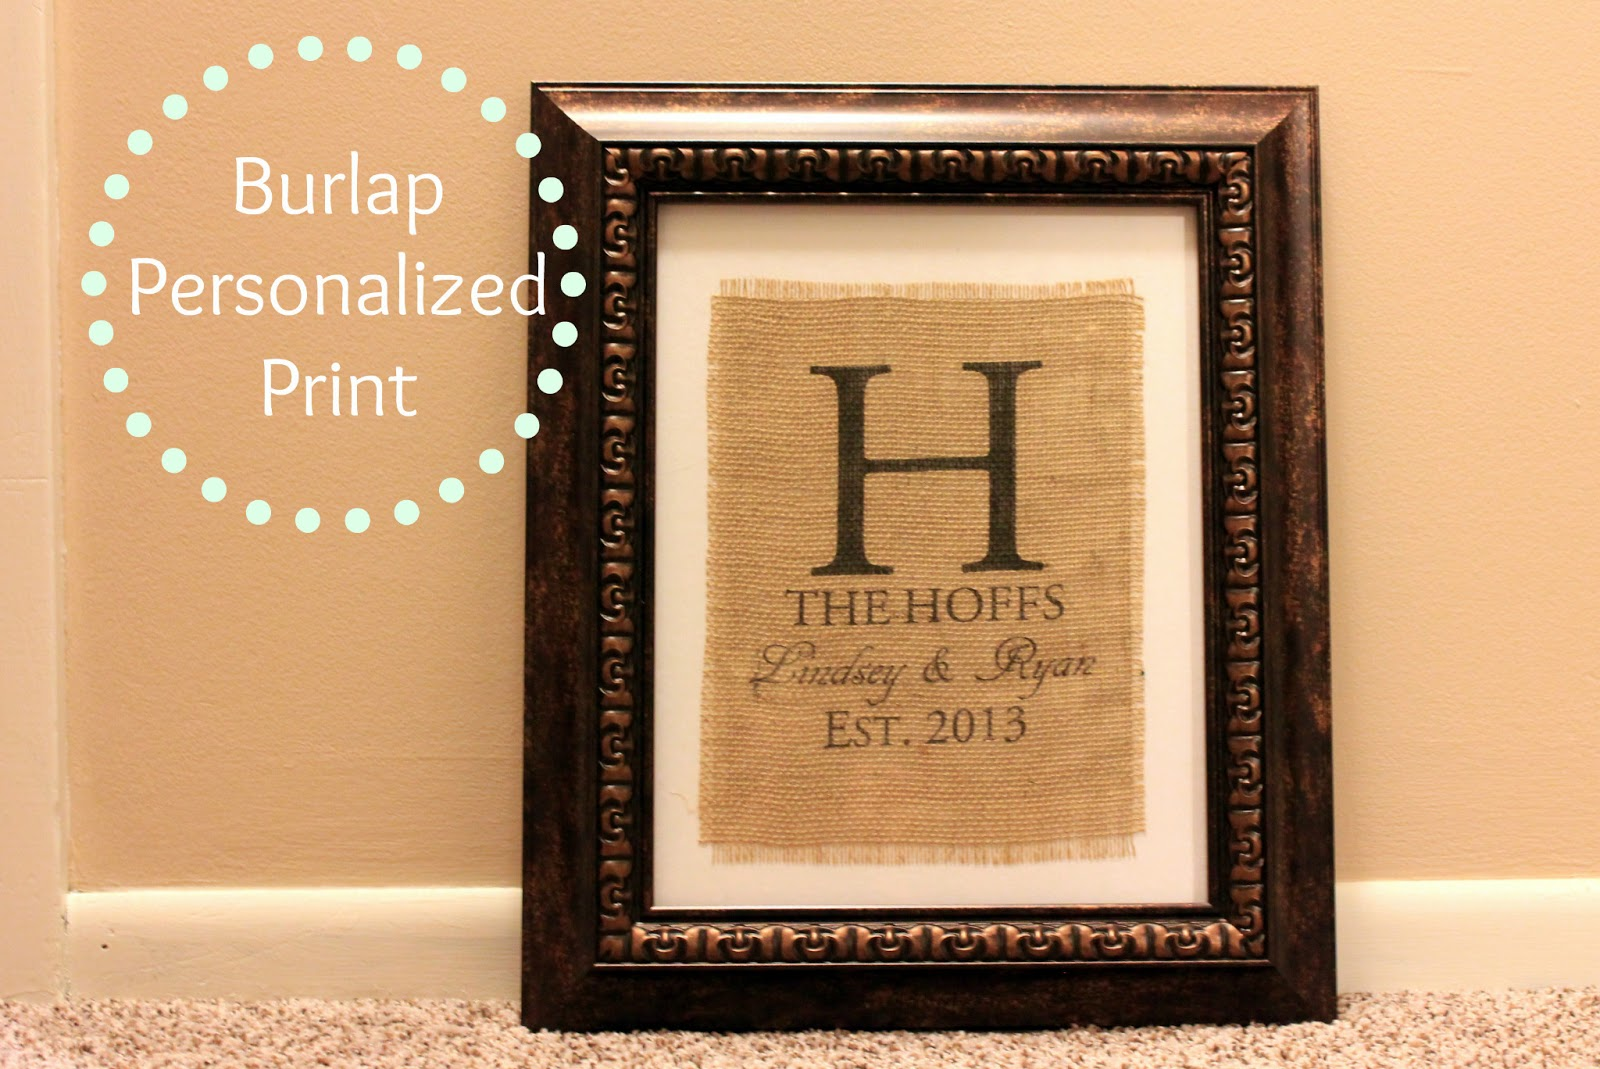 Personalised Wedding Gift Cheap : ... Pink Daisies: How to Print on Burlap and a Personalized Wedding Gift